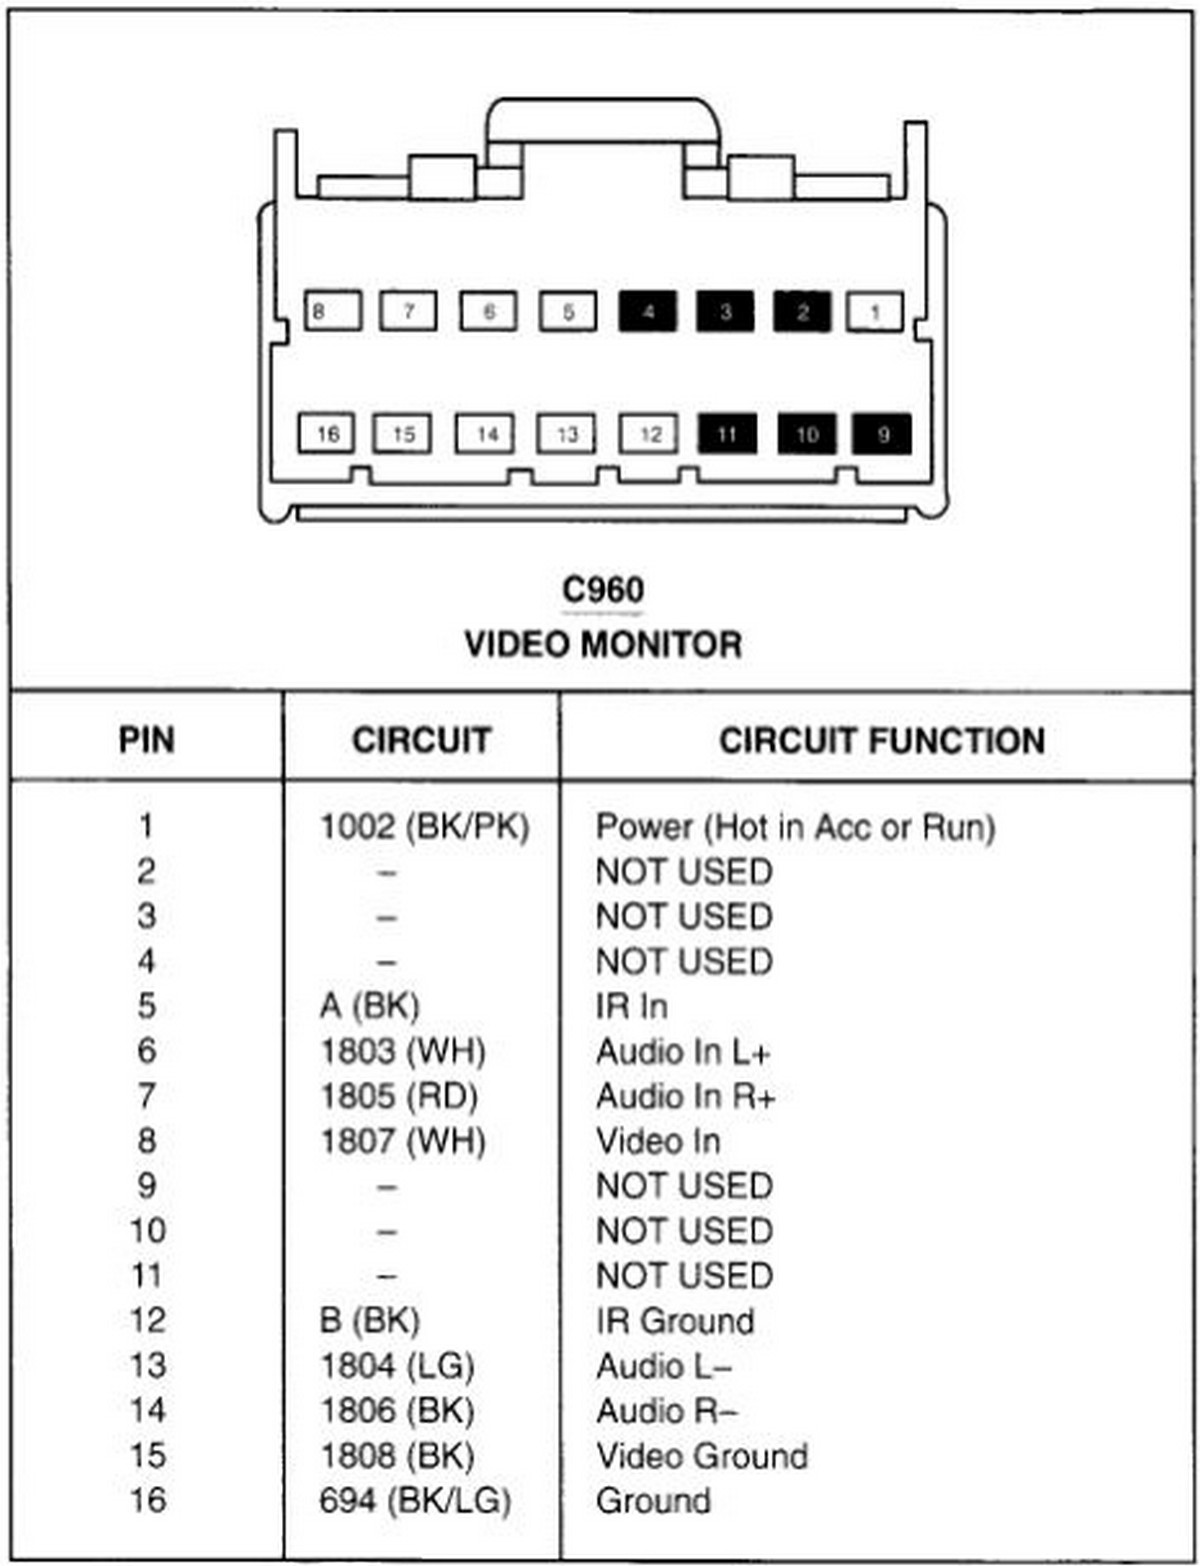 Ford Car Radio Stereo Audio Wiring Diagram Autoradio Connector Wire 1997 Cougar Headlight Installation Schematic Schema Esquema De Conexiones Stecker Konektor Connecteur Cable